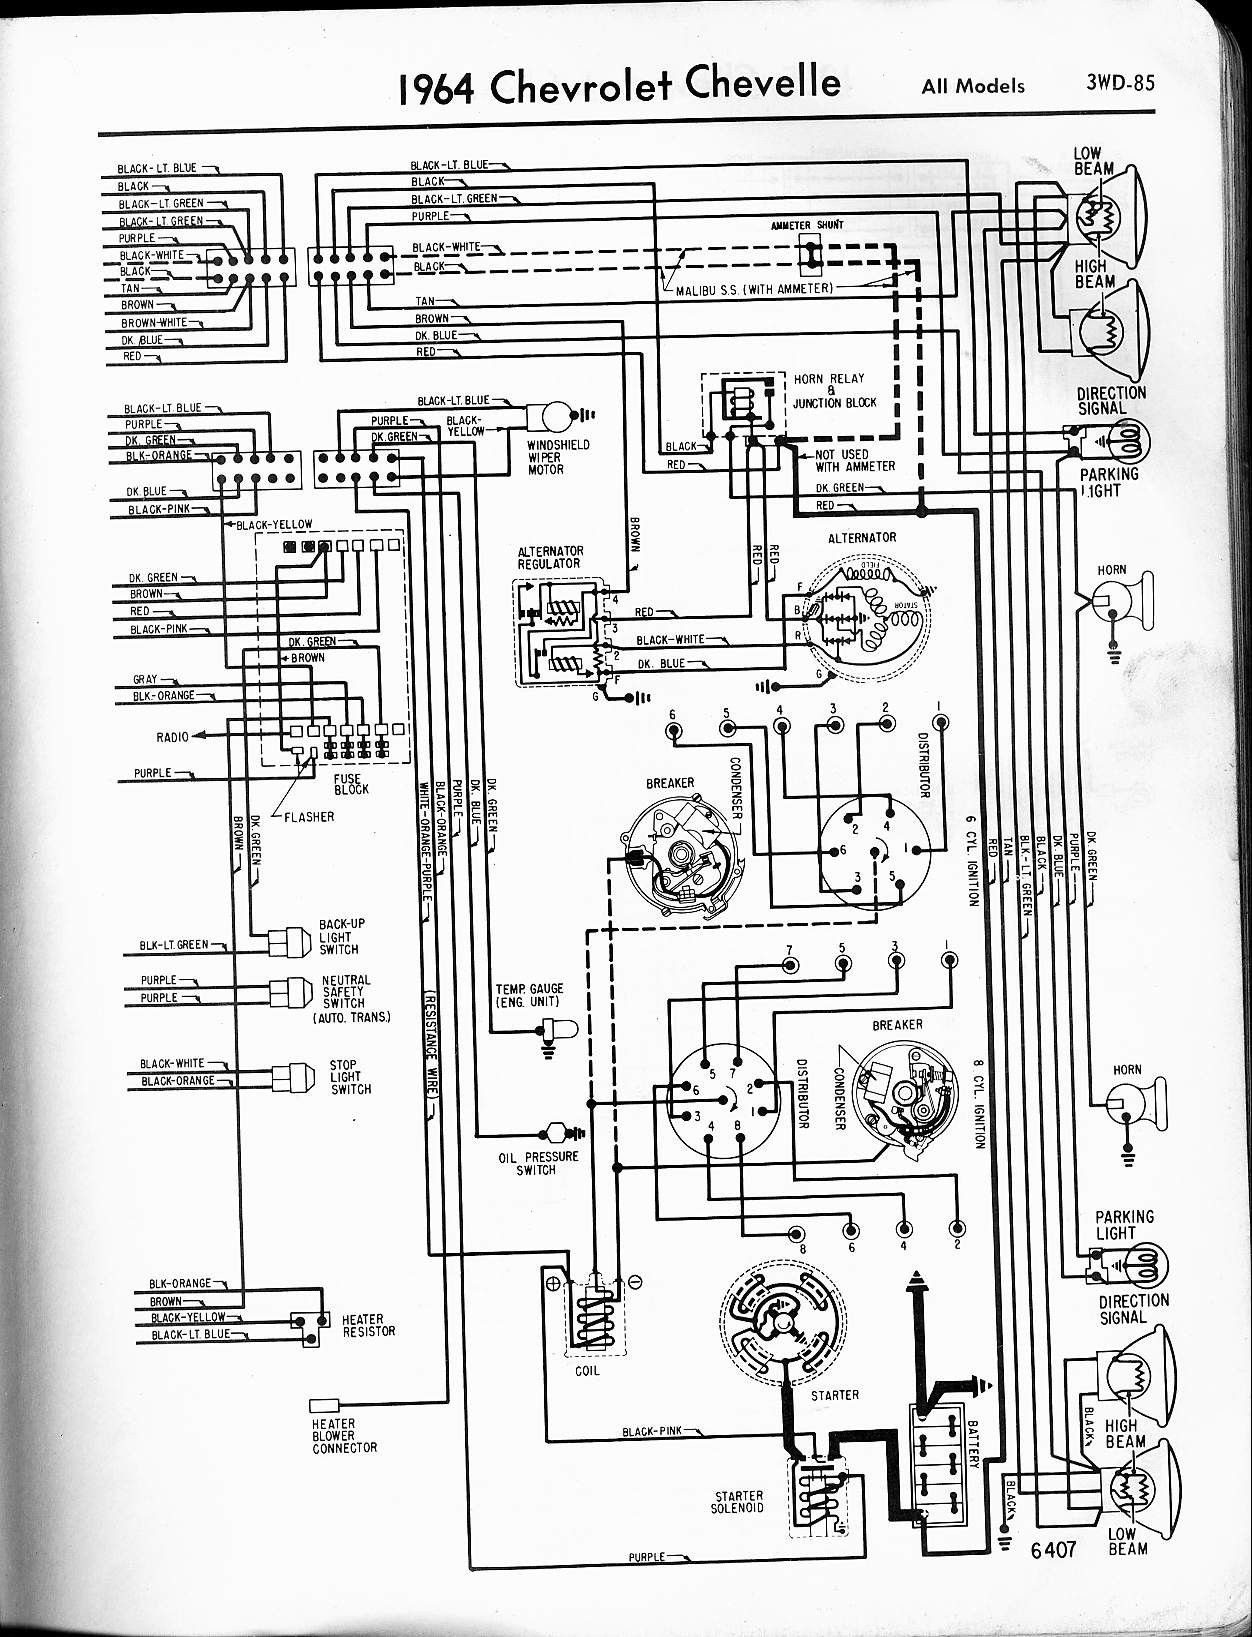 Chevy Chevelle Wiring Diagram